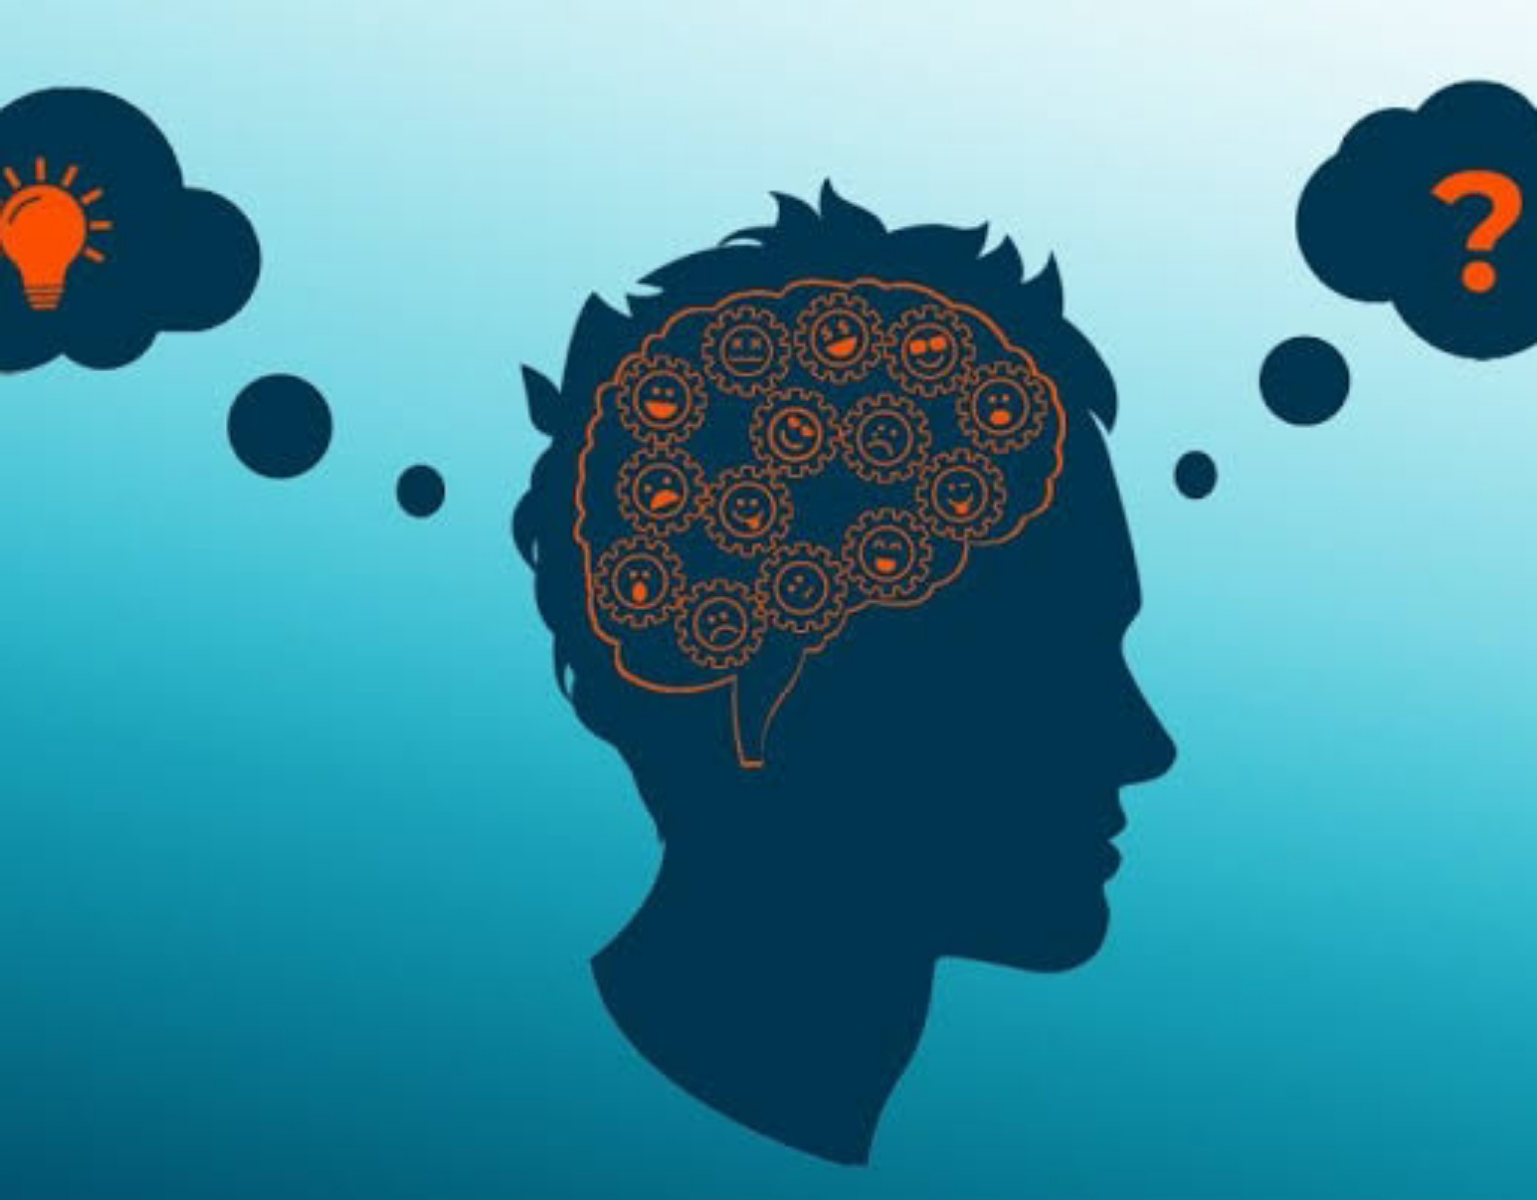 Who is affected by the Dunning-Kruger effect?